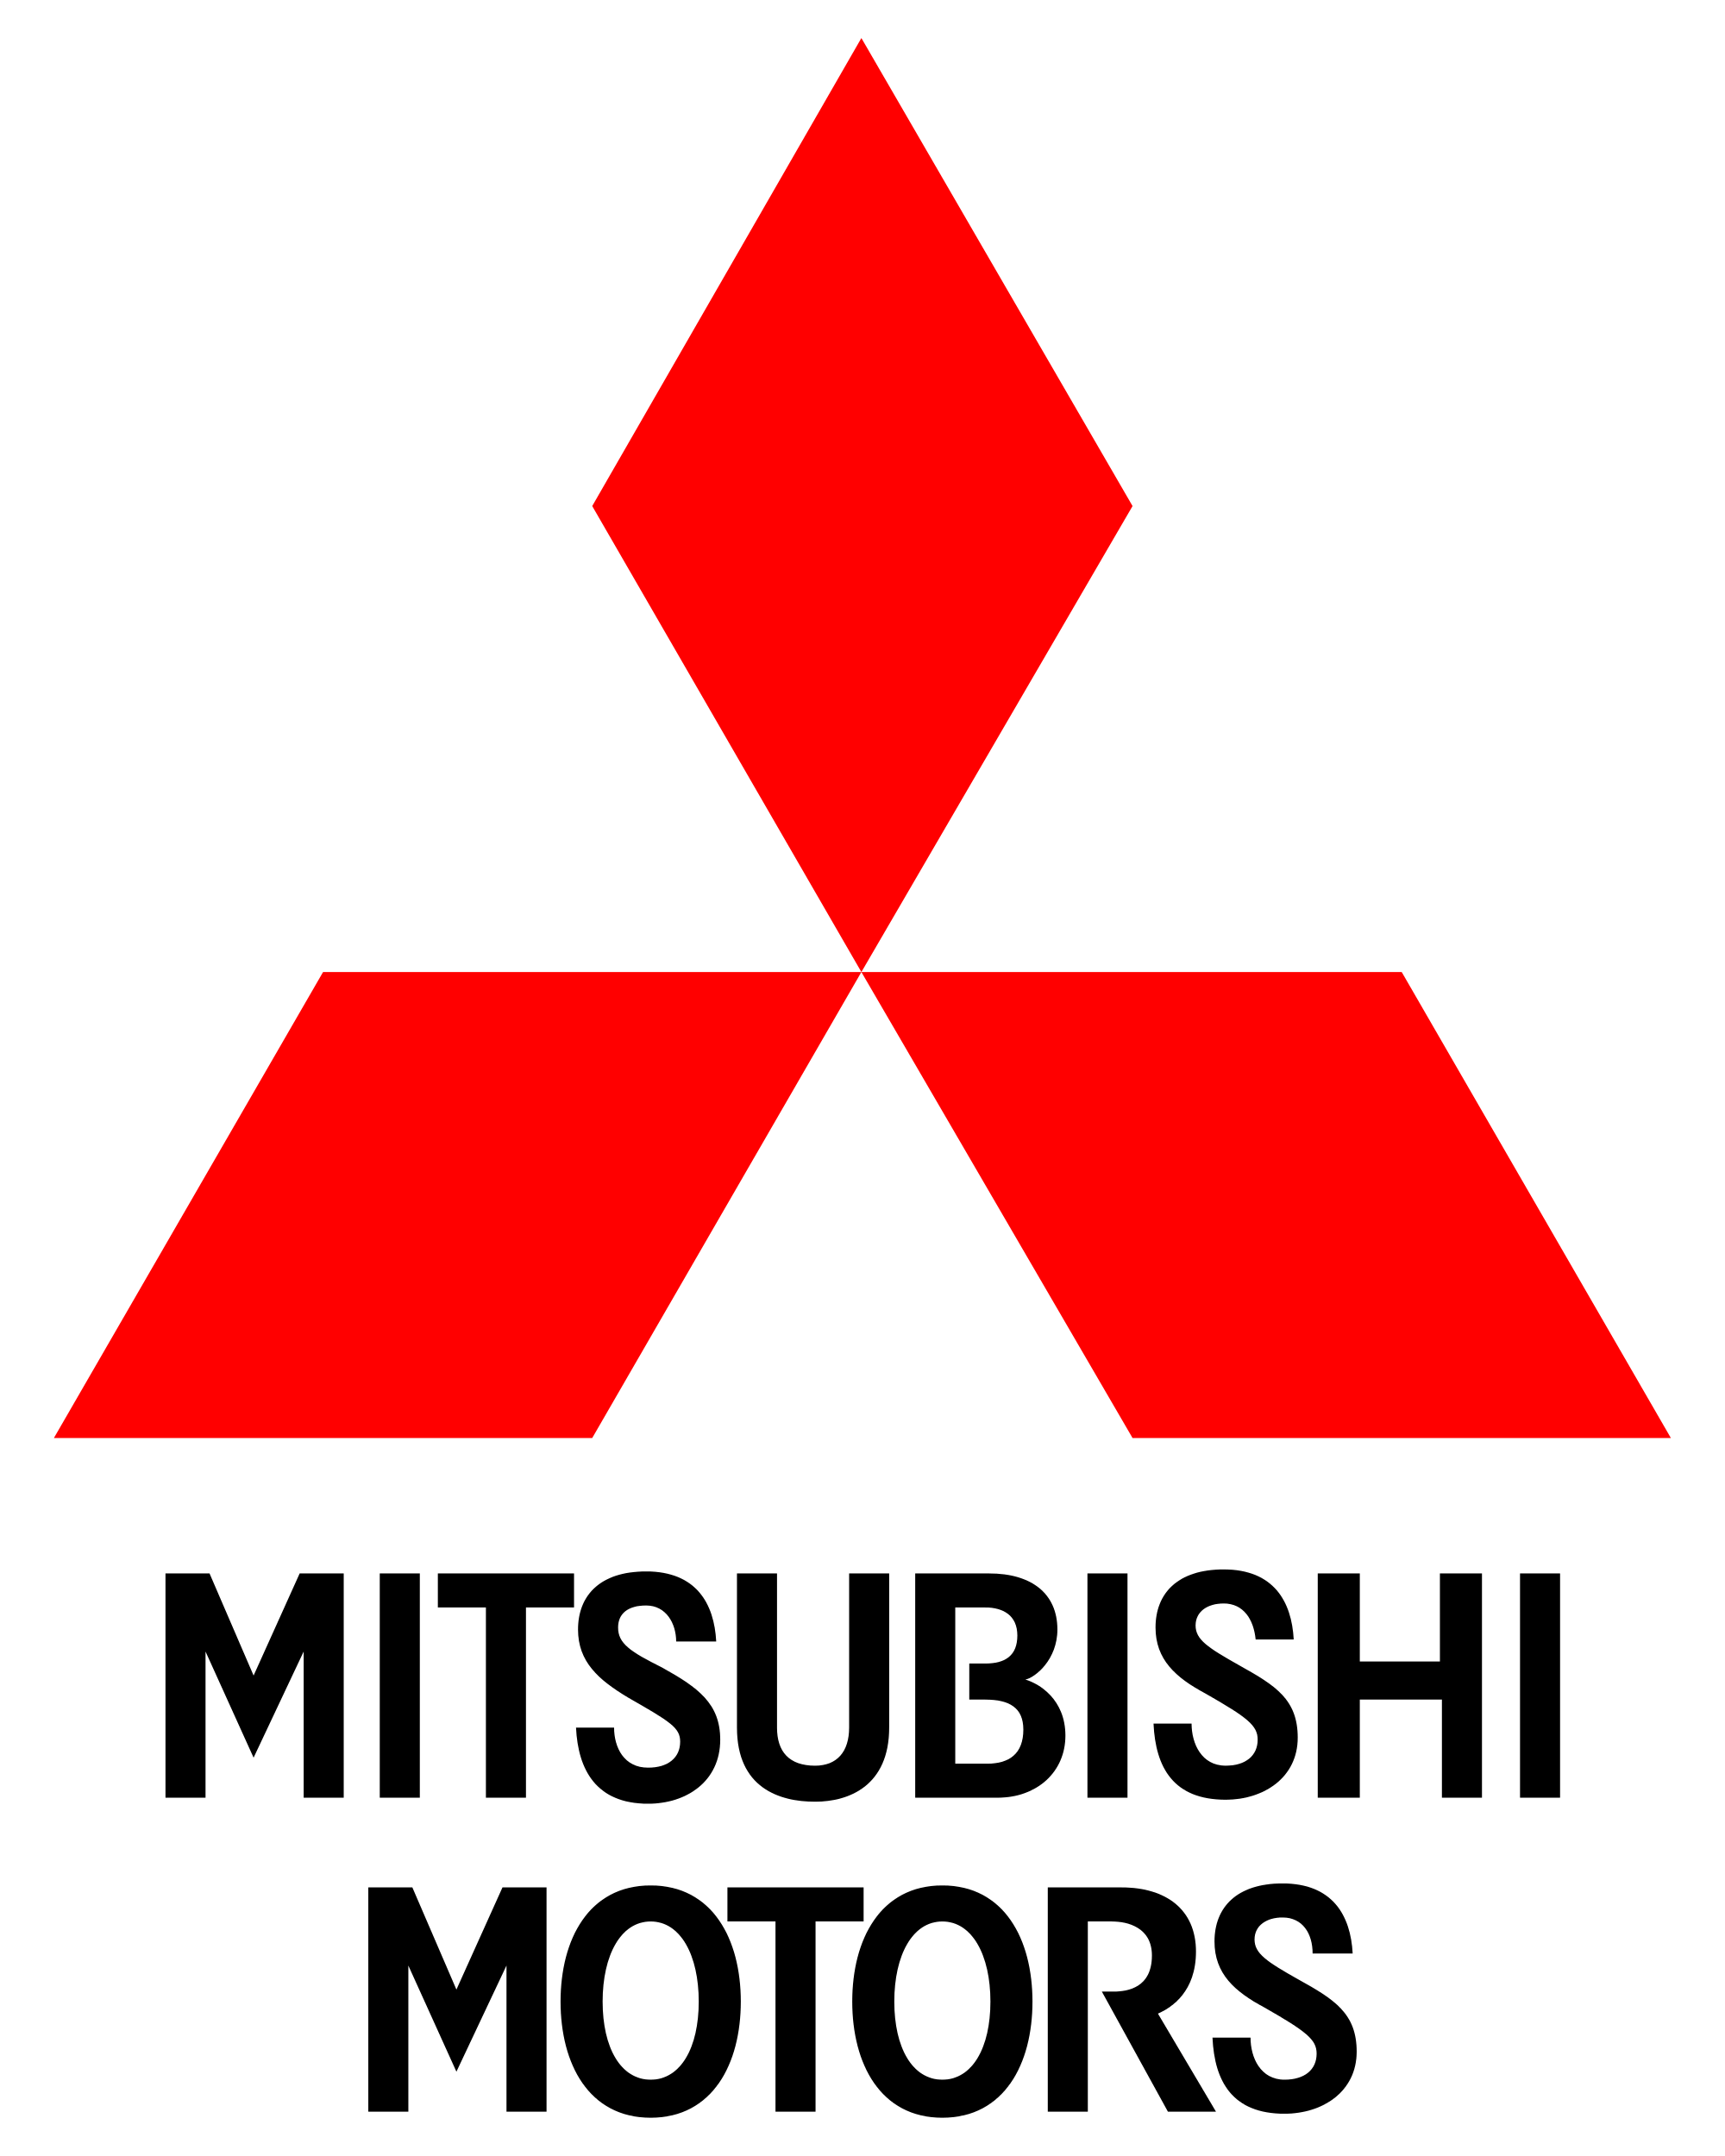 http://rpmautolease.com/wp-content/uploads/2017/08/Mitsubishi-logo-2000x2500.png